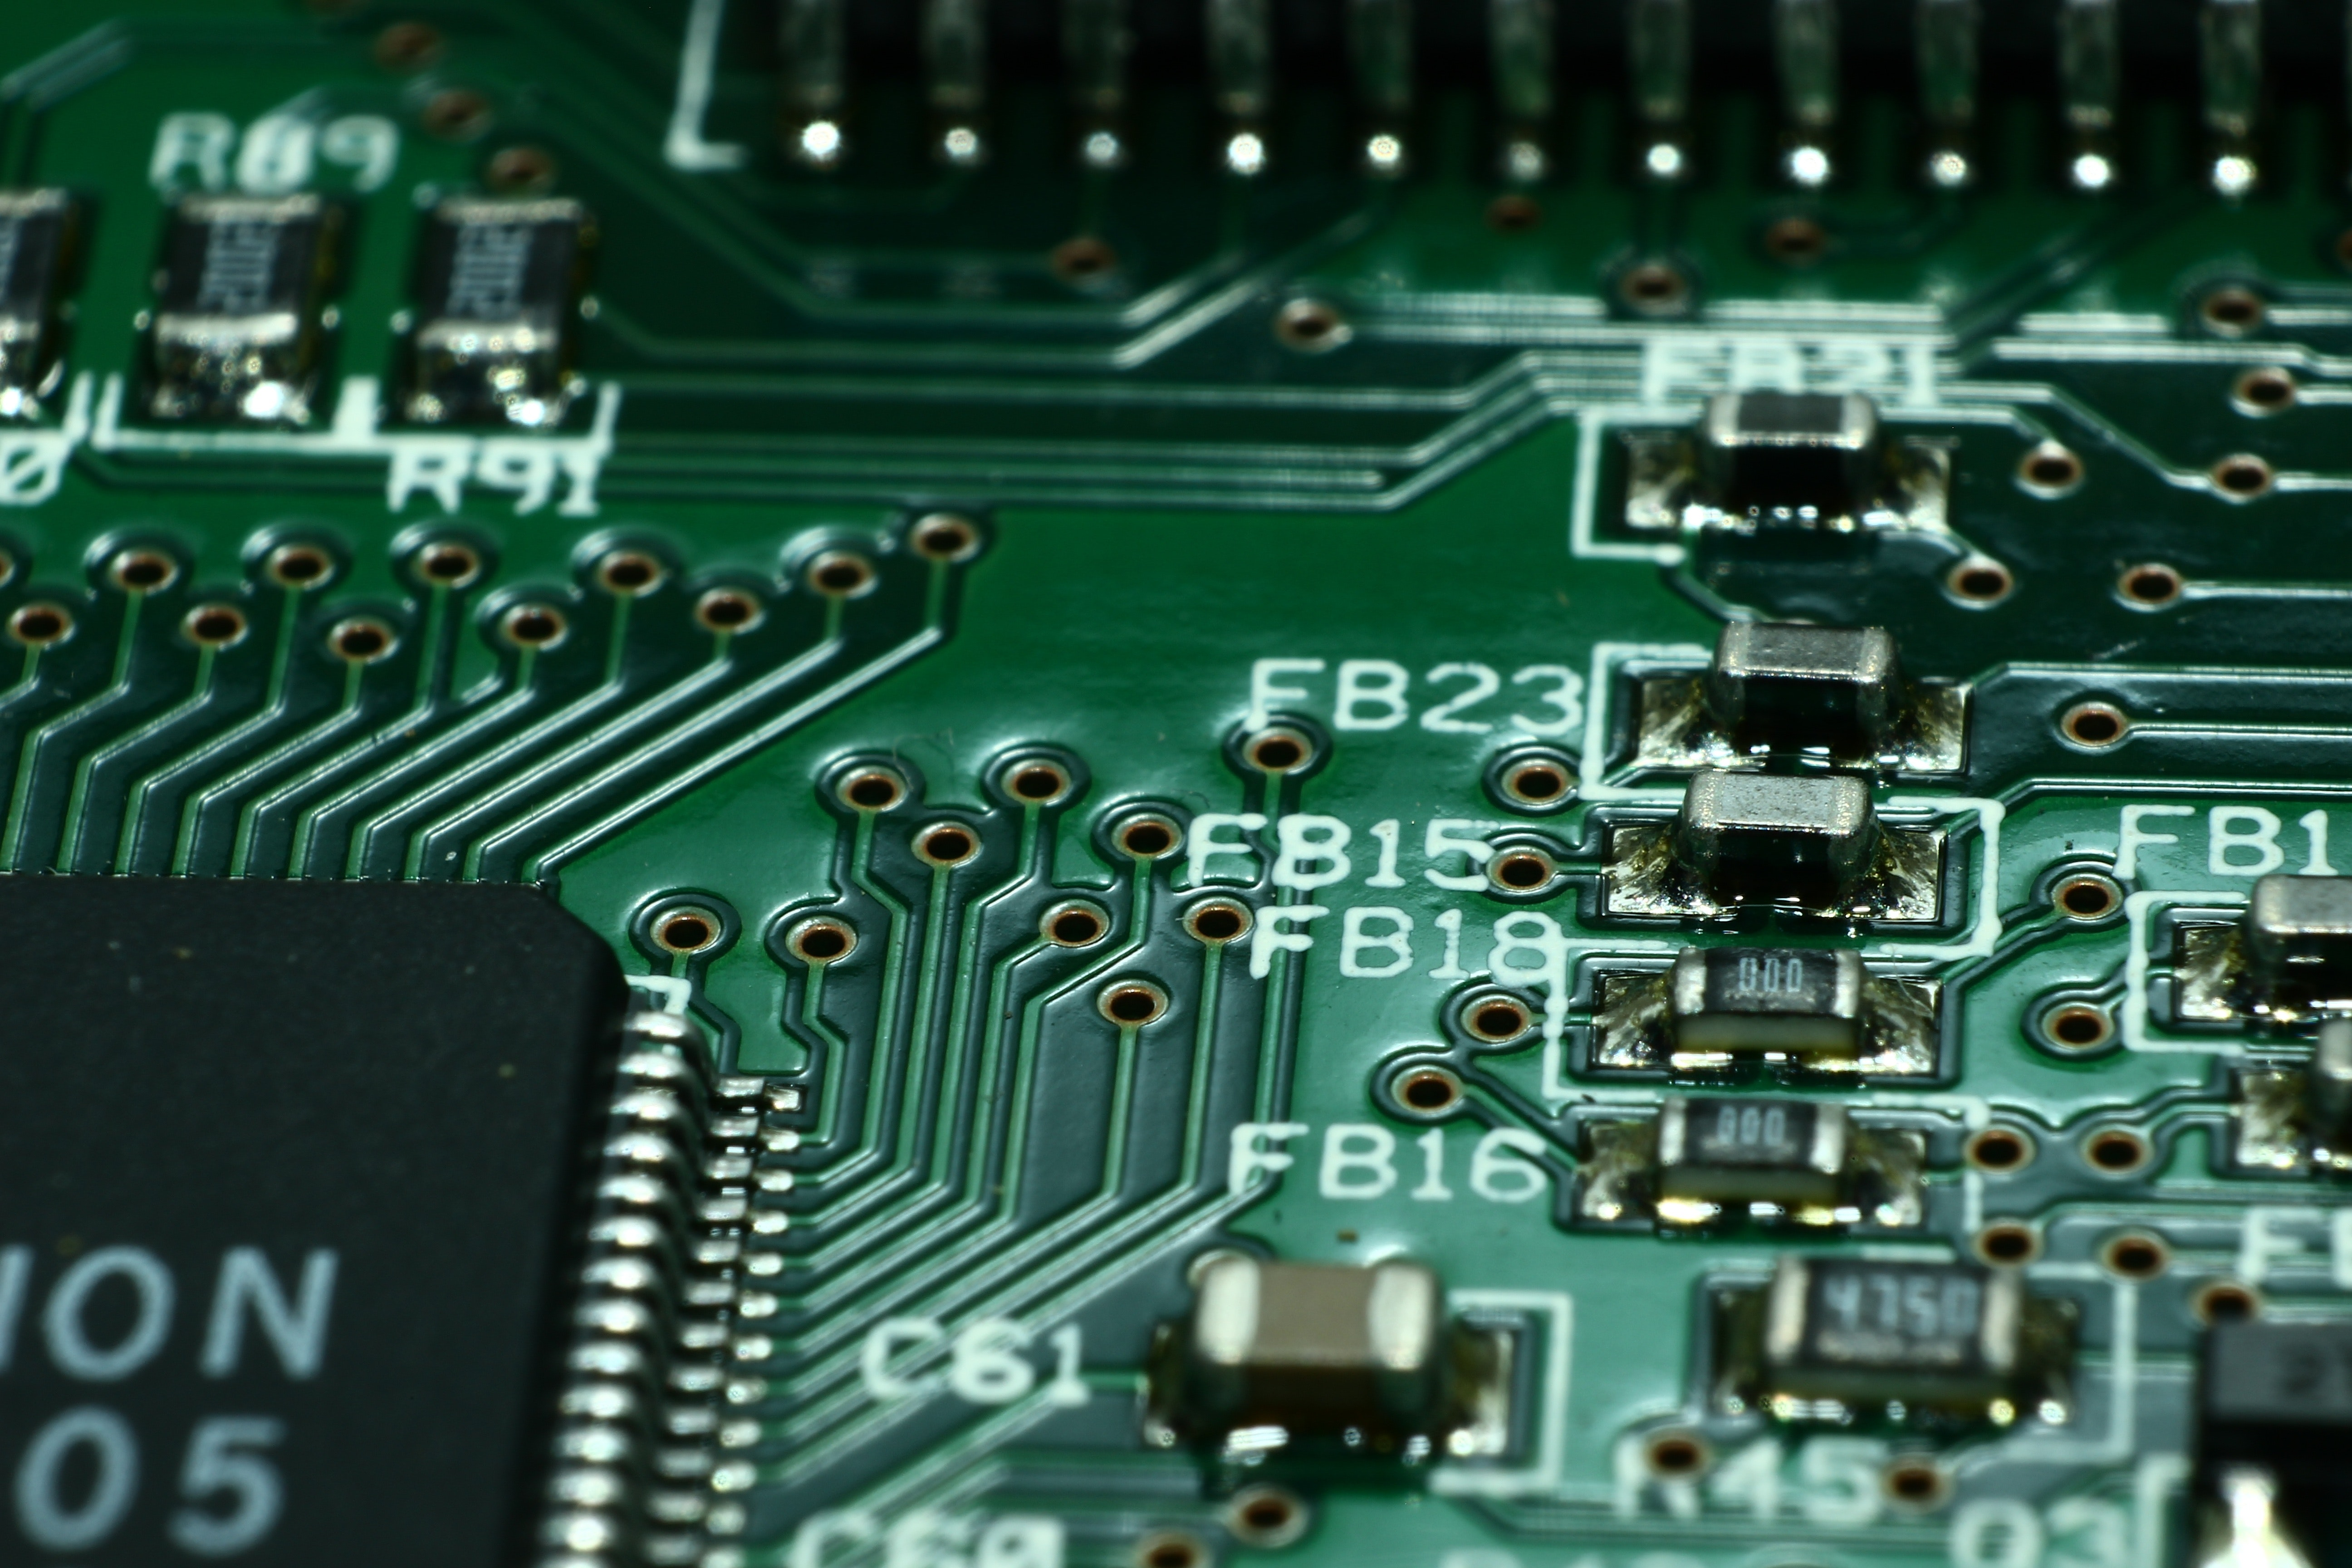 Stock Photo of a non descript circuit board close up